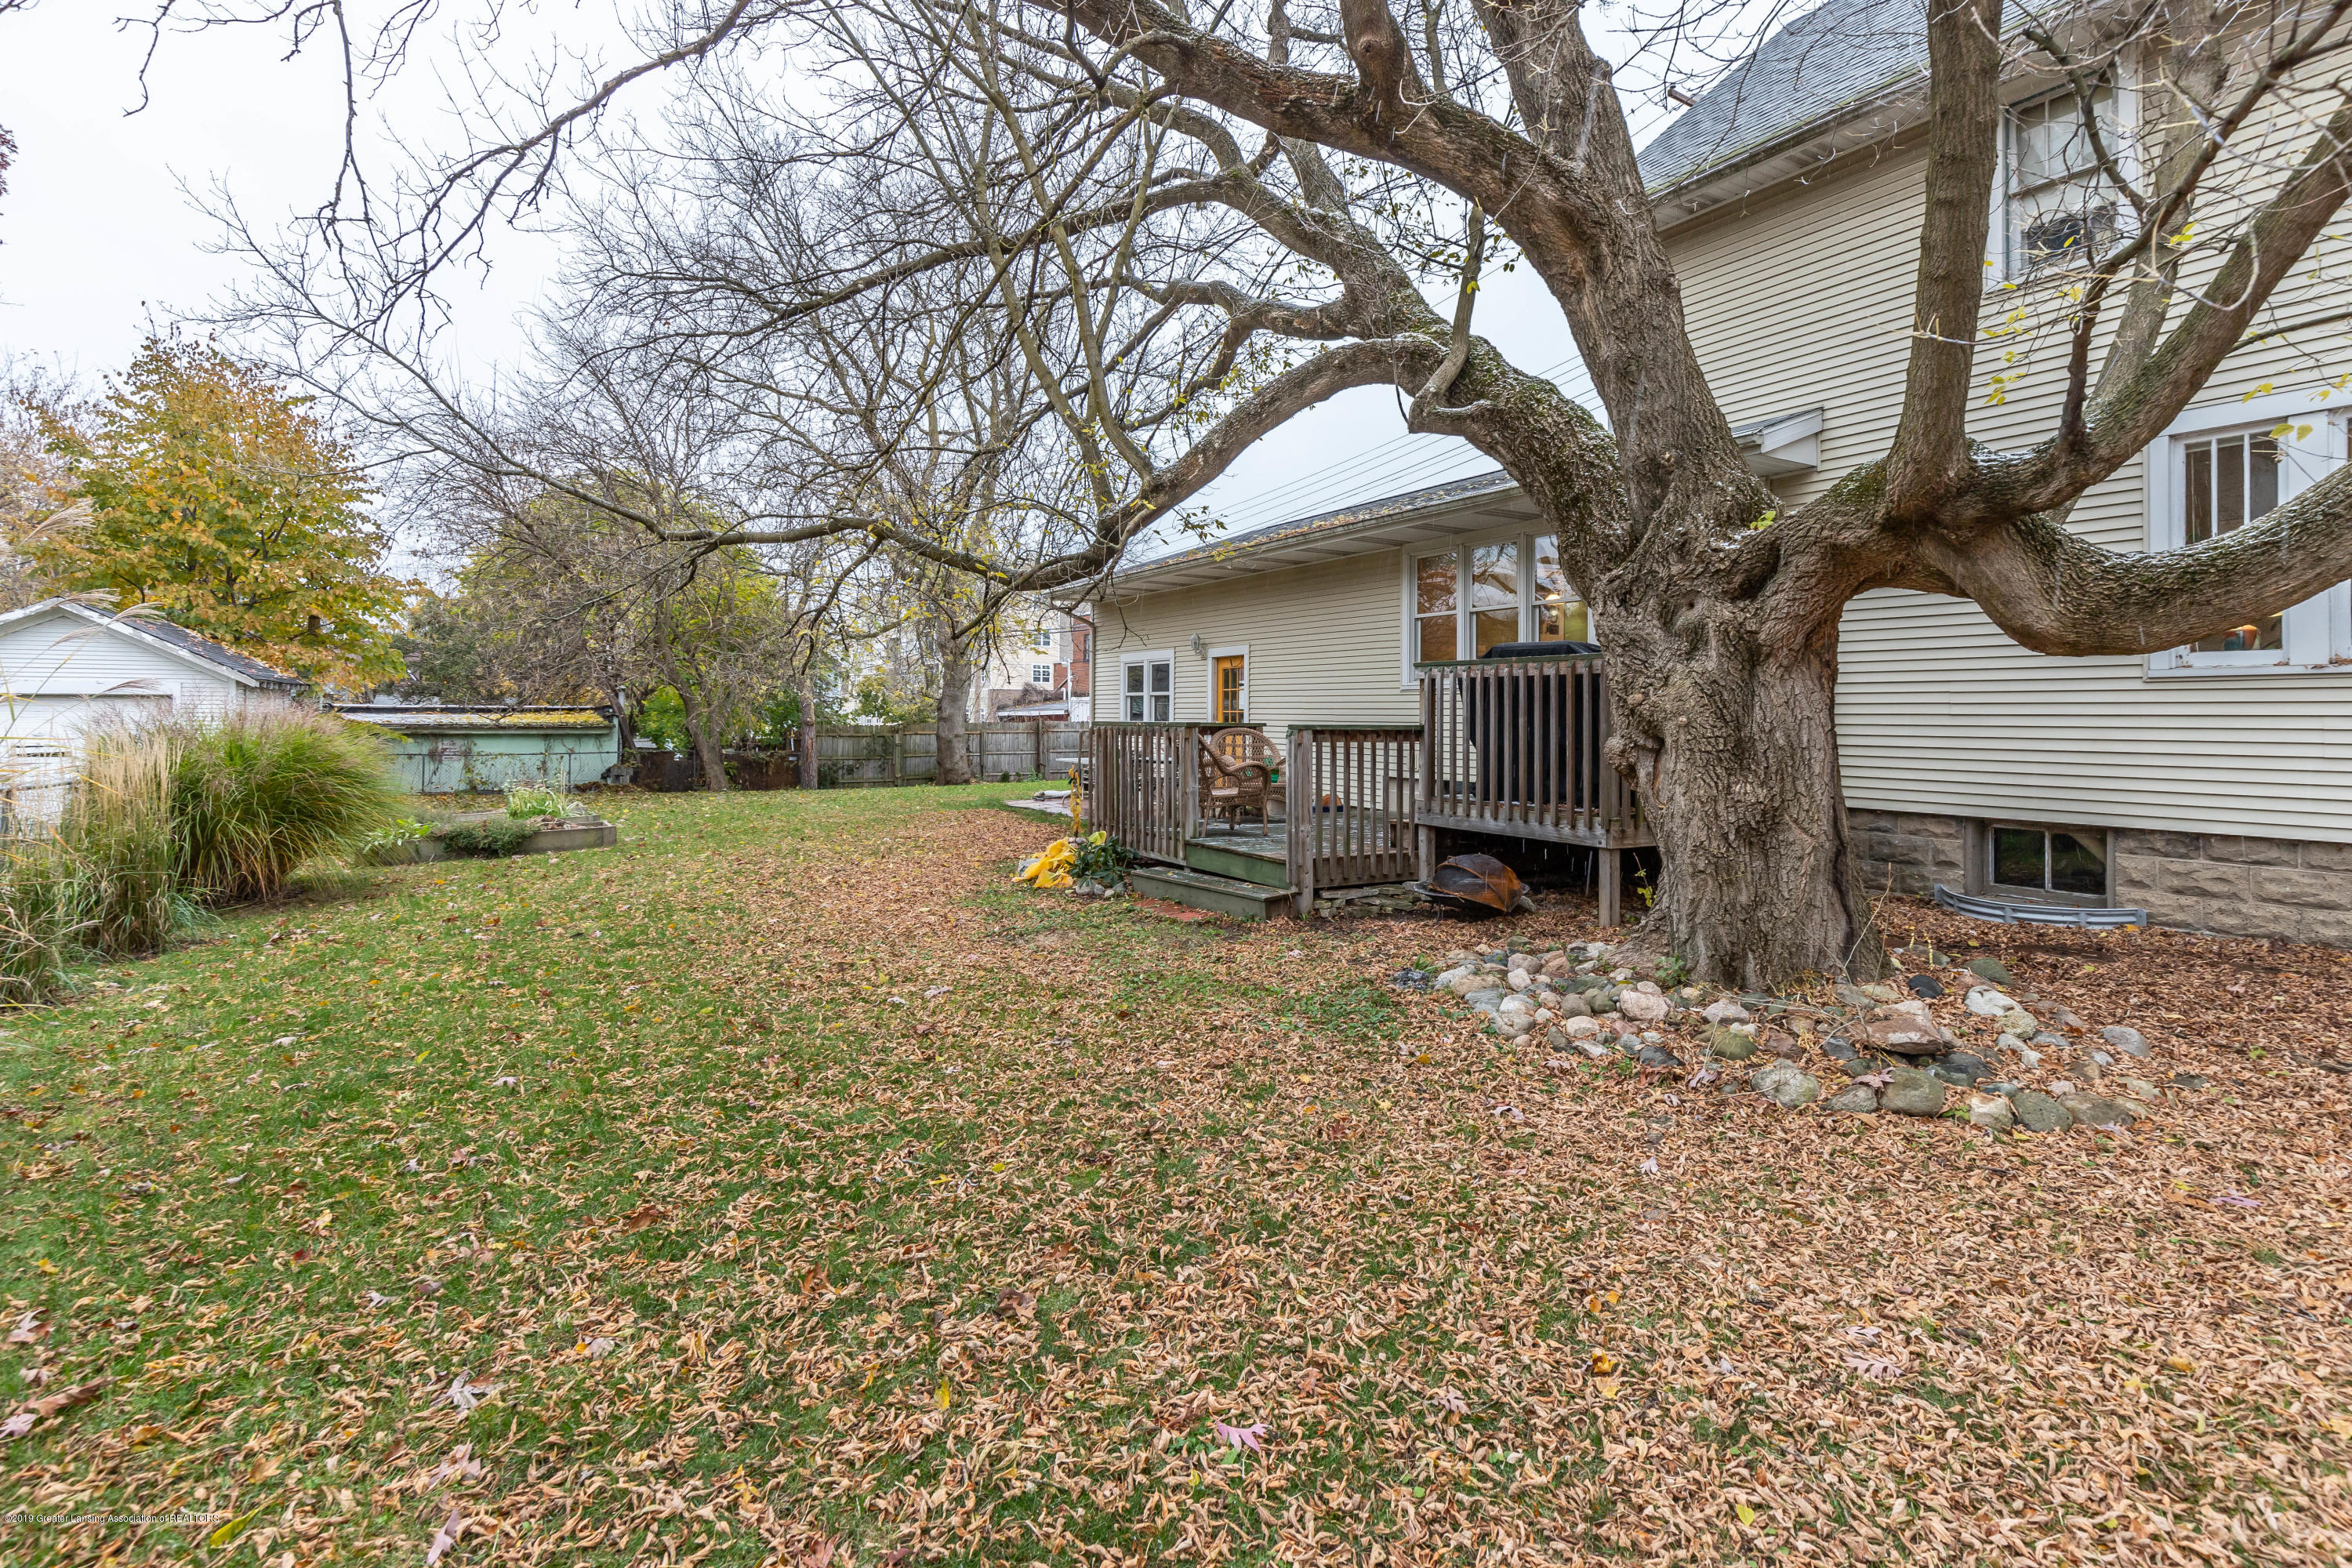 114 S Foster Ave - Yard - 31